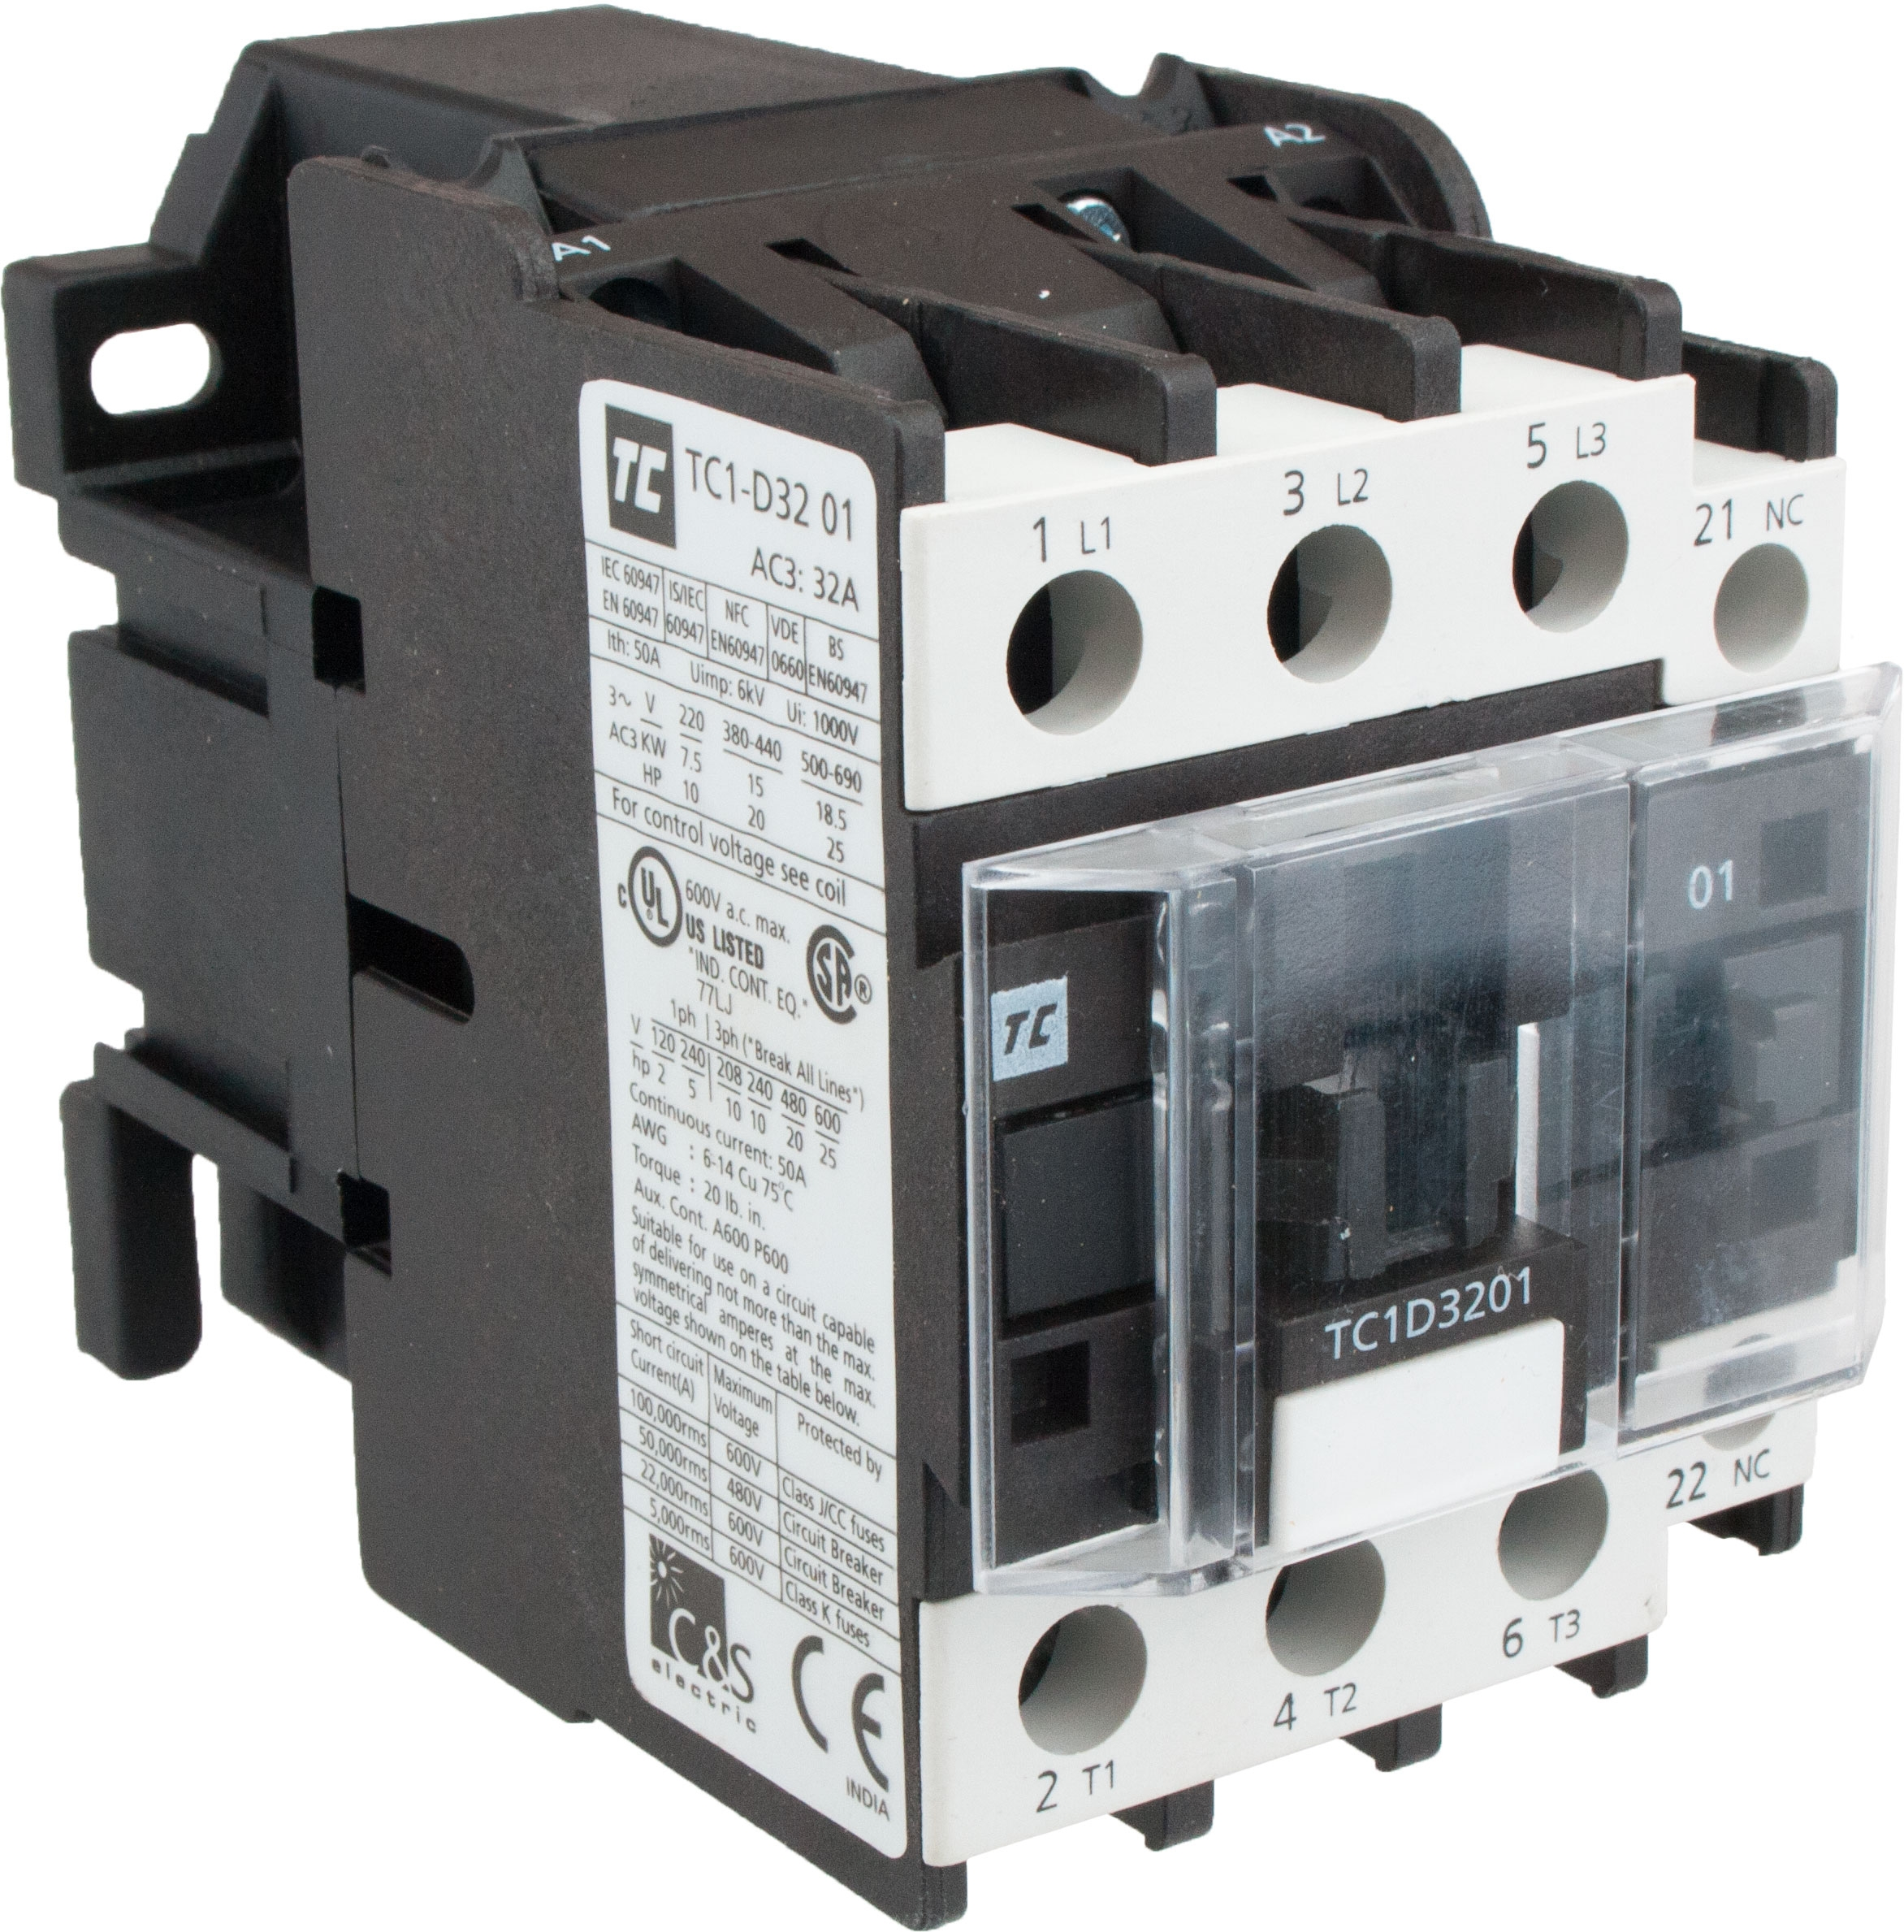 3 Pole Contactor 32 Amp 440 Volt Ac Coil Tc1d3201r7 Elecdirect 120 Wiring